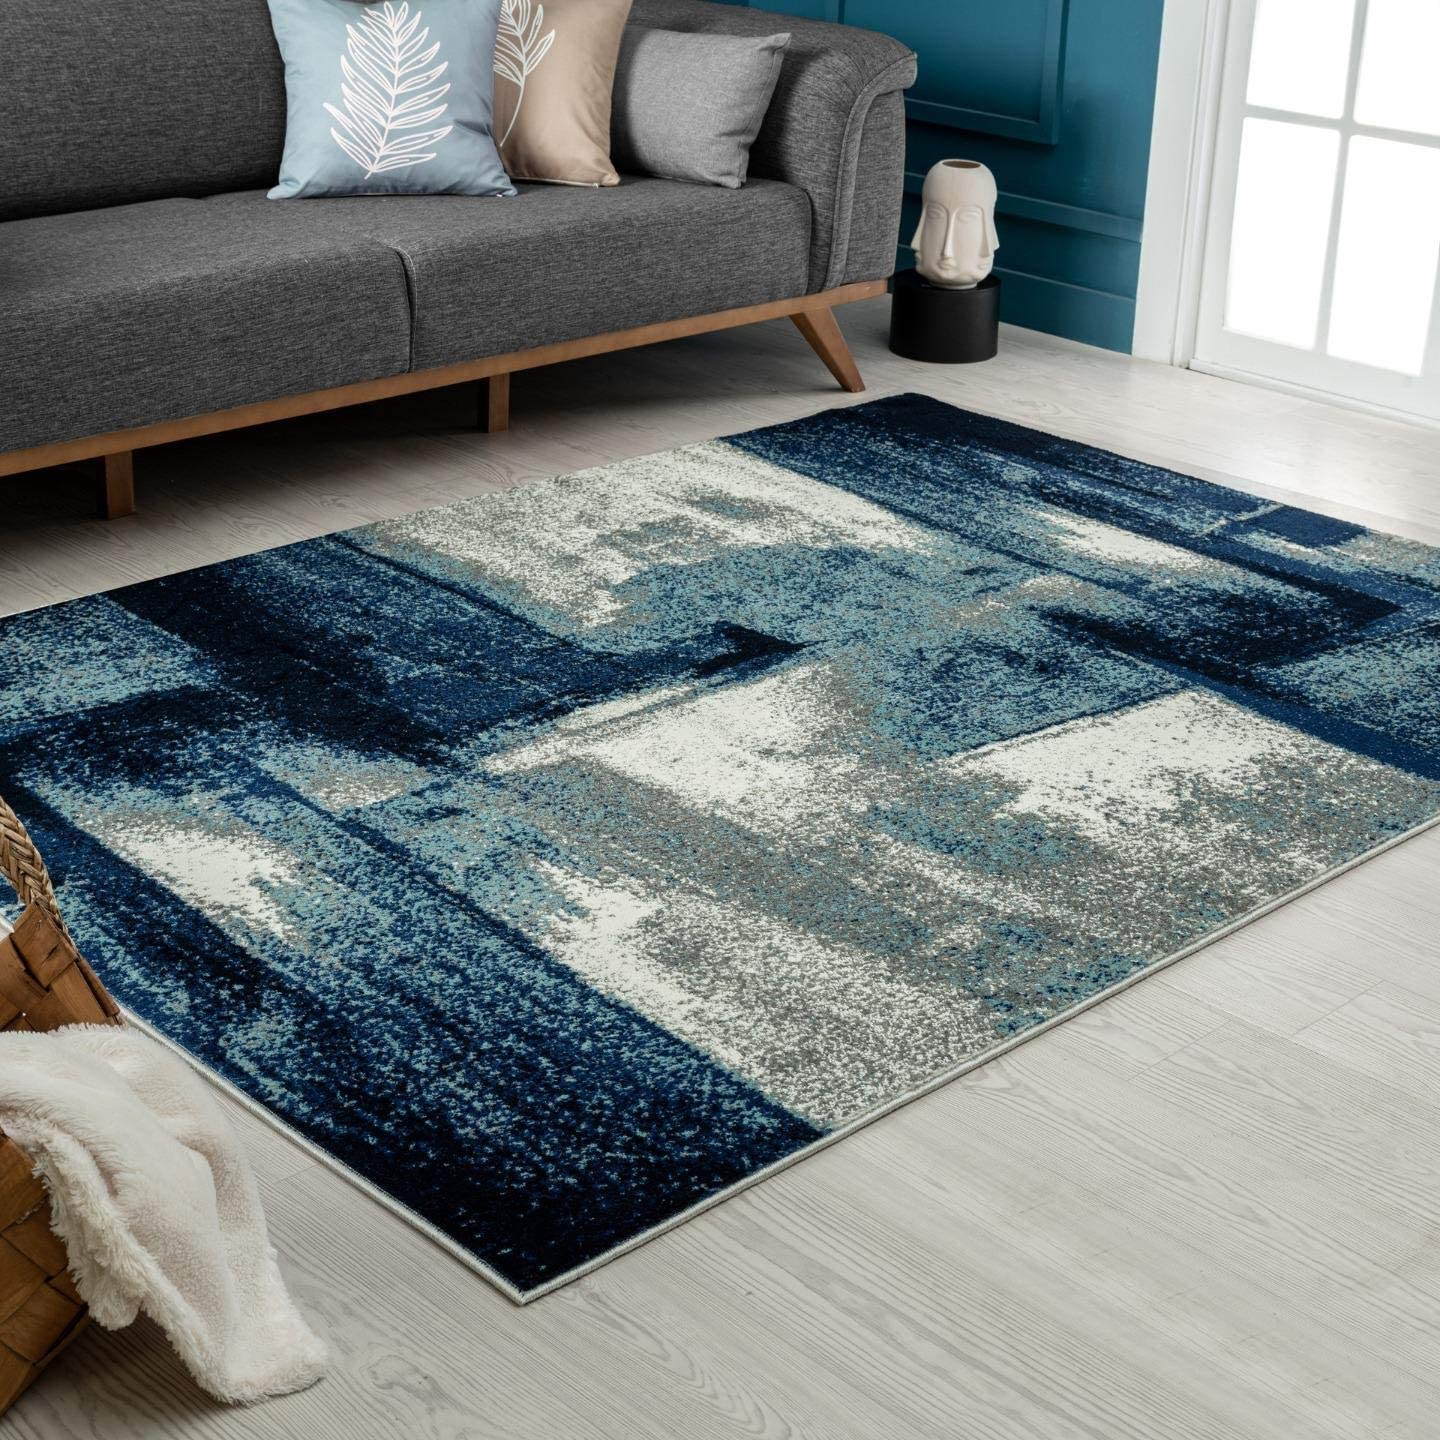 Luxe Weavers Rug - Lagos Collection 7558 Modern Abstract – Stain Resistant Area Rug / Navy 5' x 7'